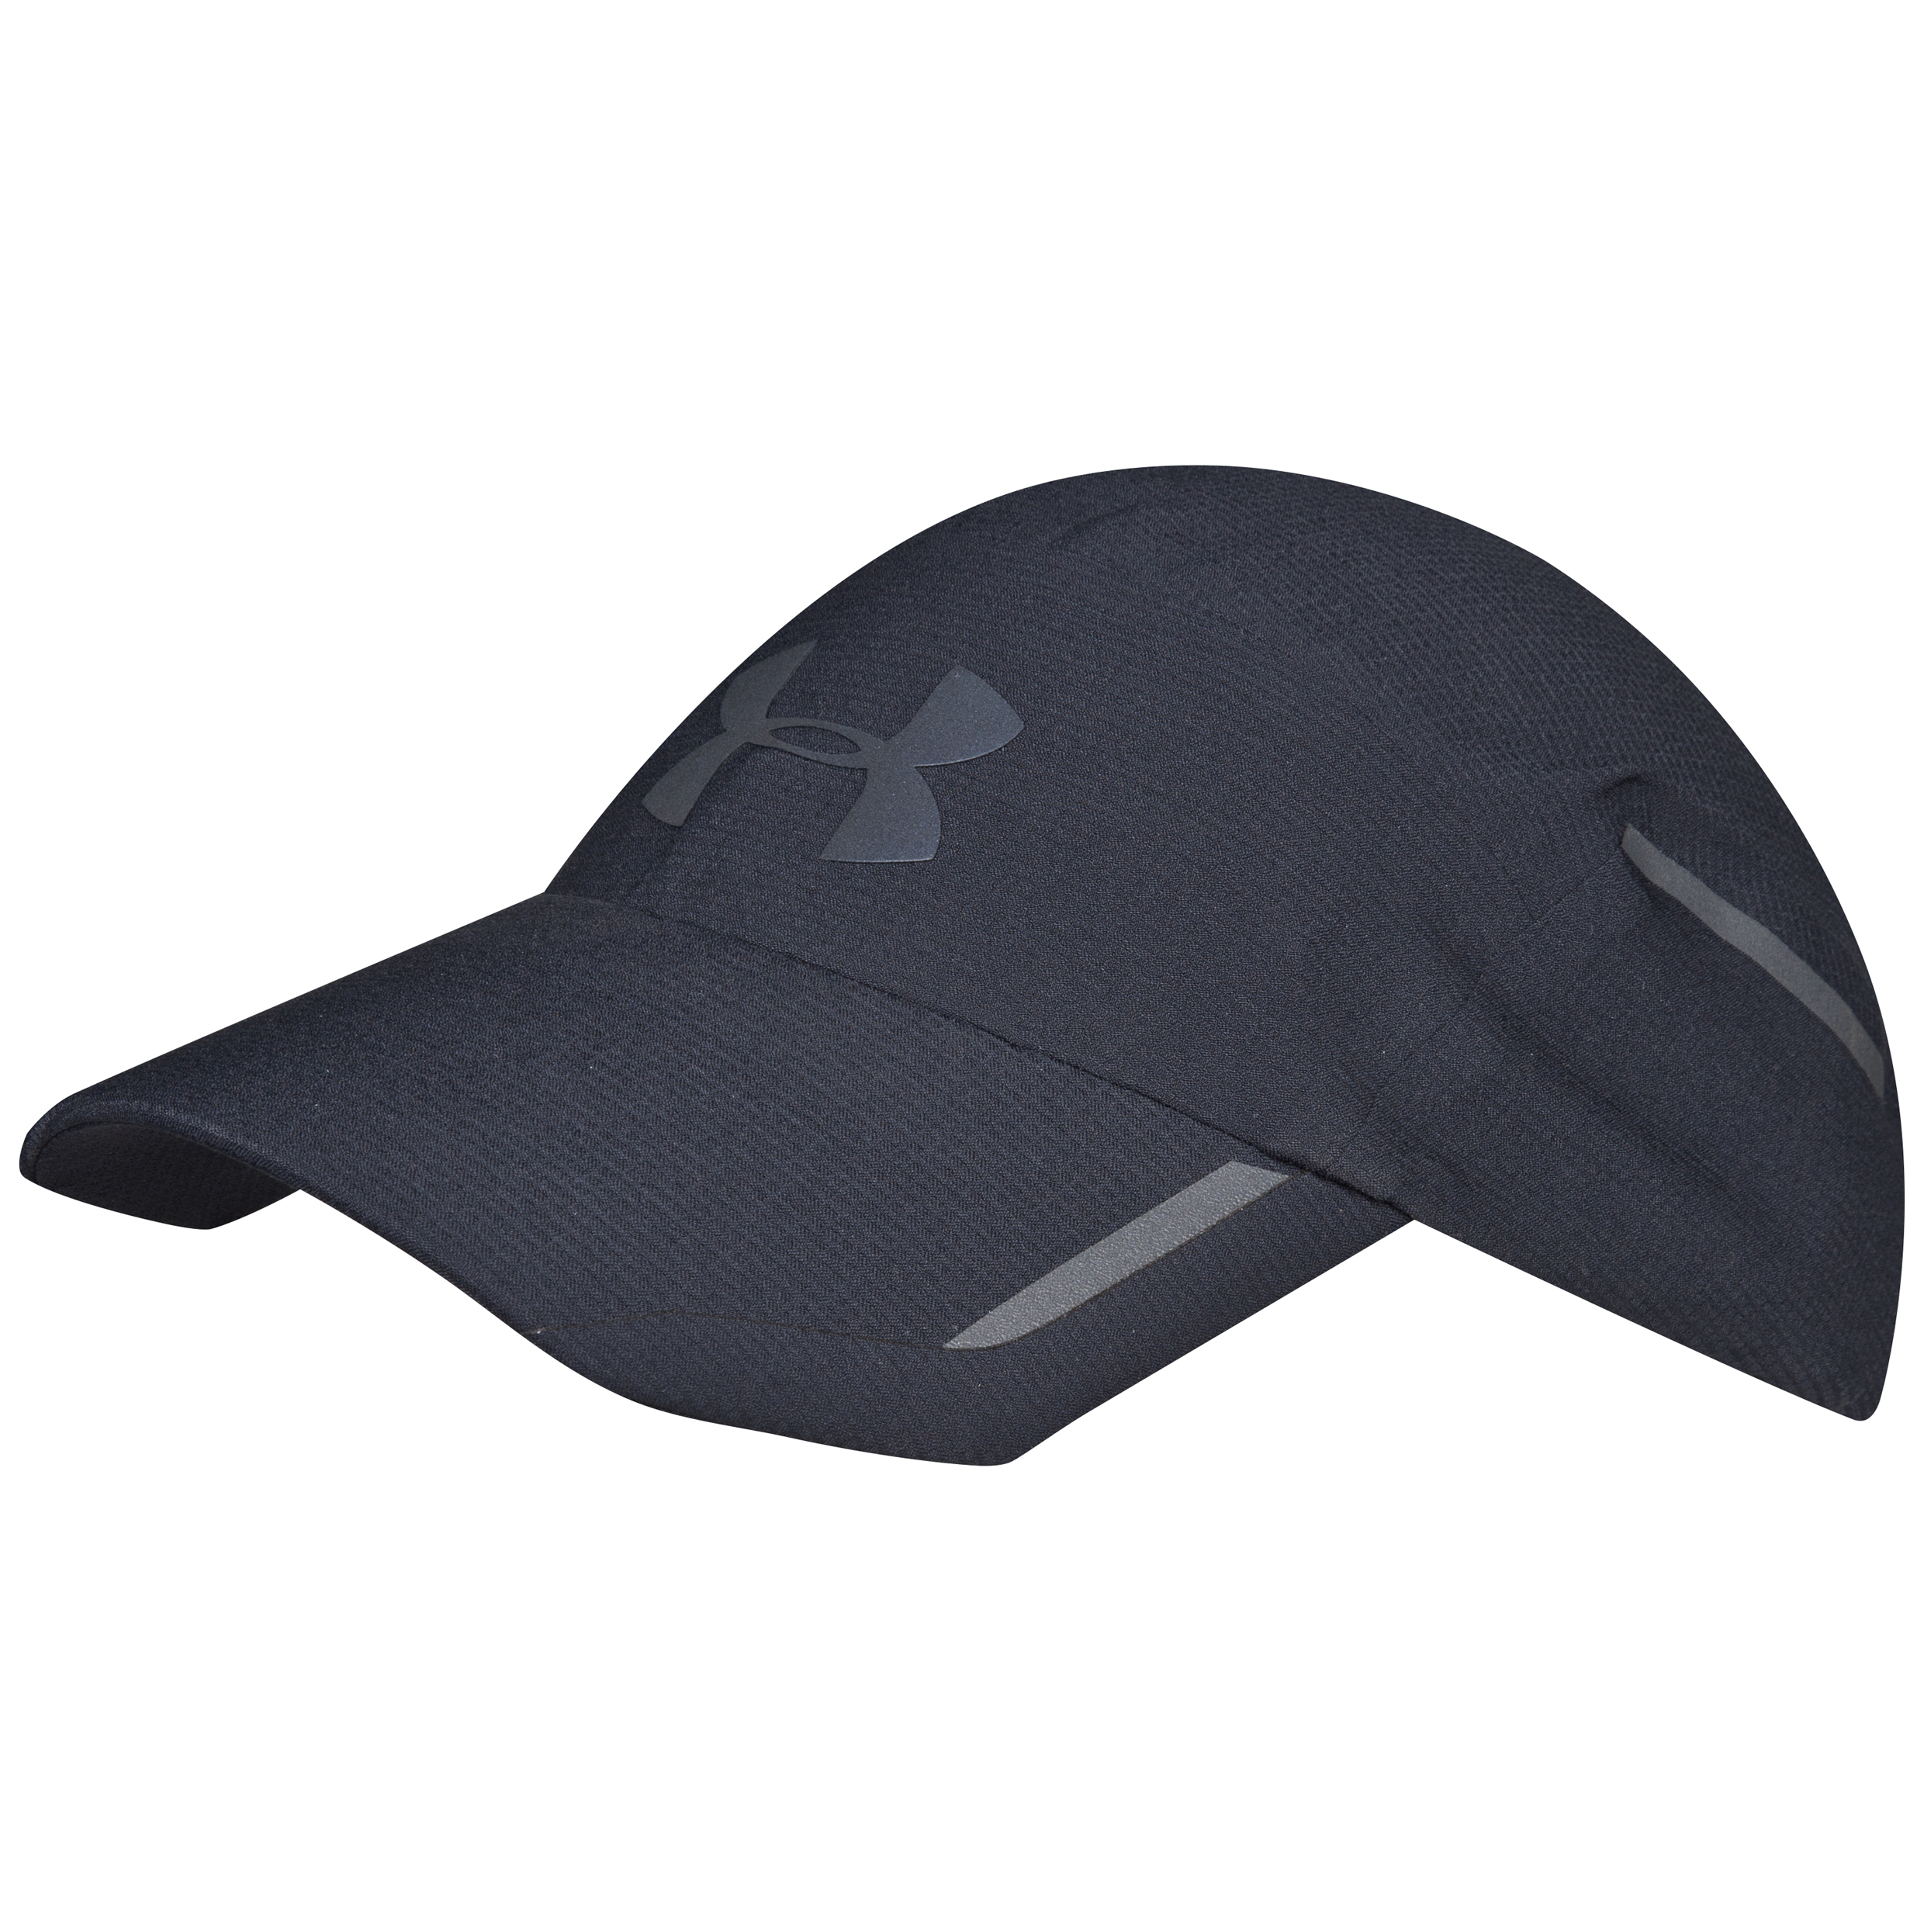 Running Under Armour Qualified Lighted Run Cap - Black/Reflective Black